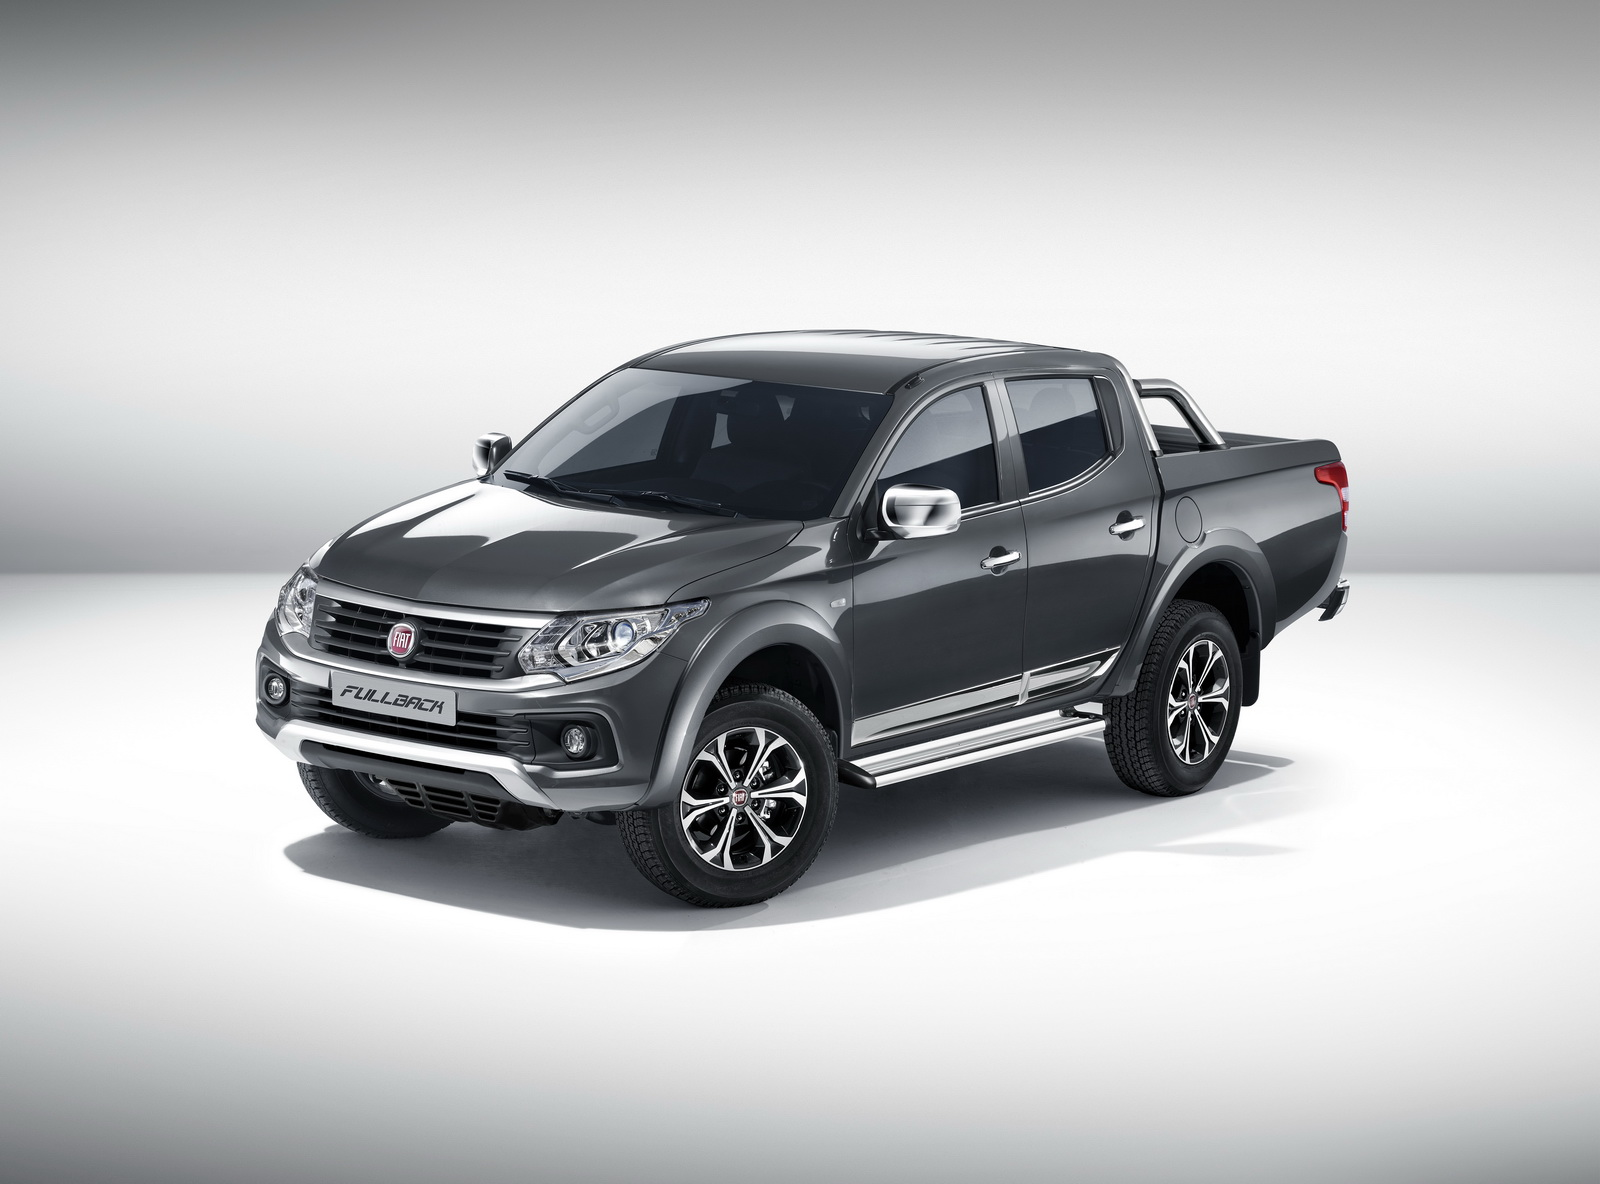 2016 yeni fiat fullback t rkiye fiyat a kland oto kokpit. Black Bedroom Furniture Sets. Home Design Ideas